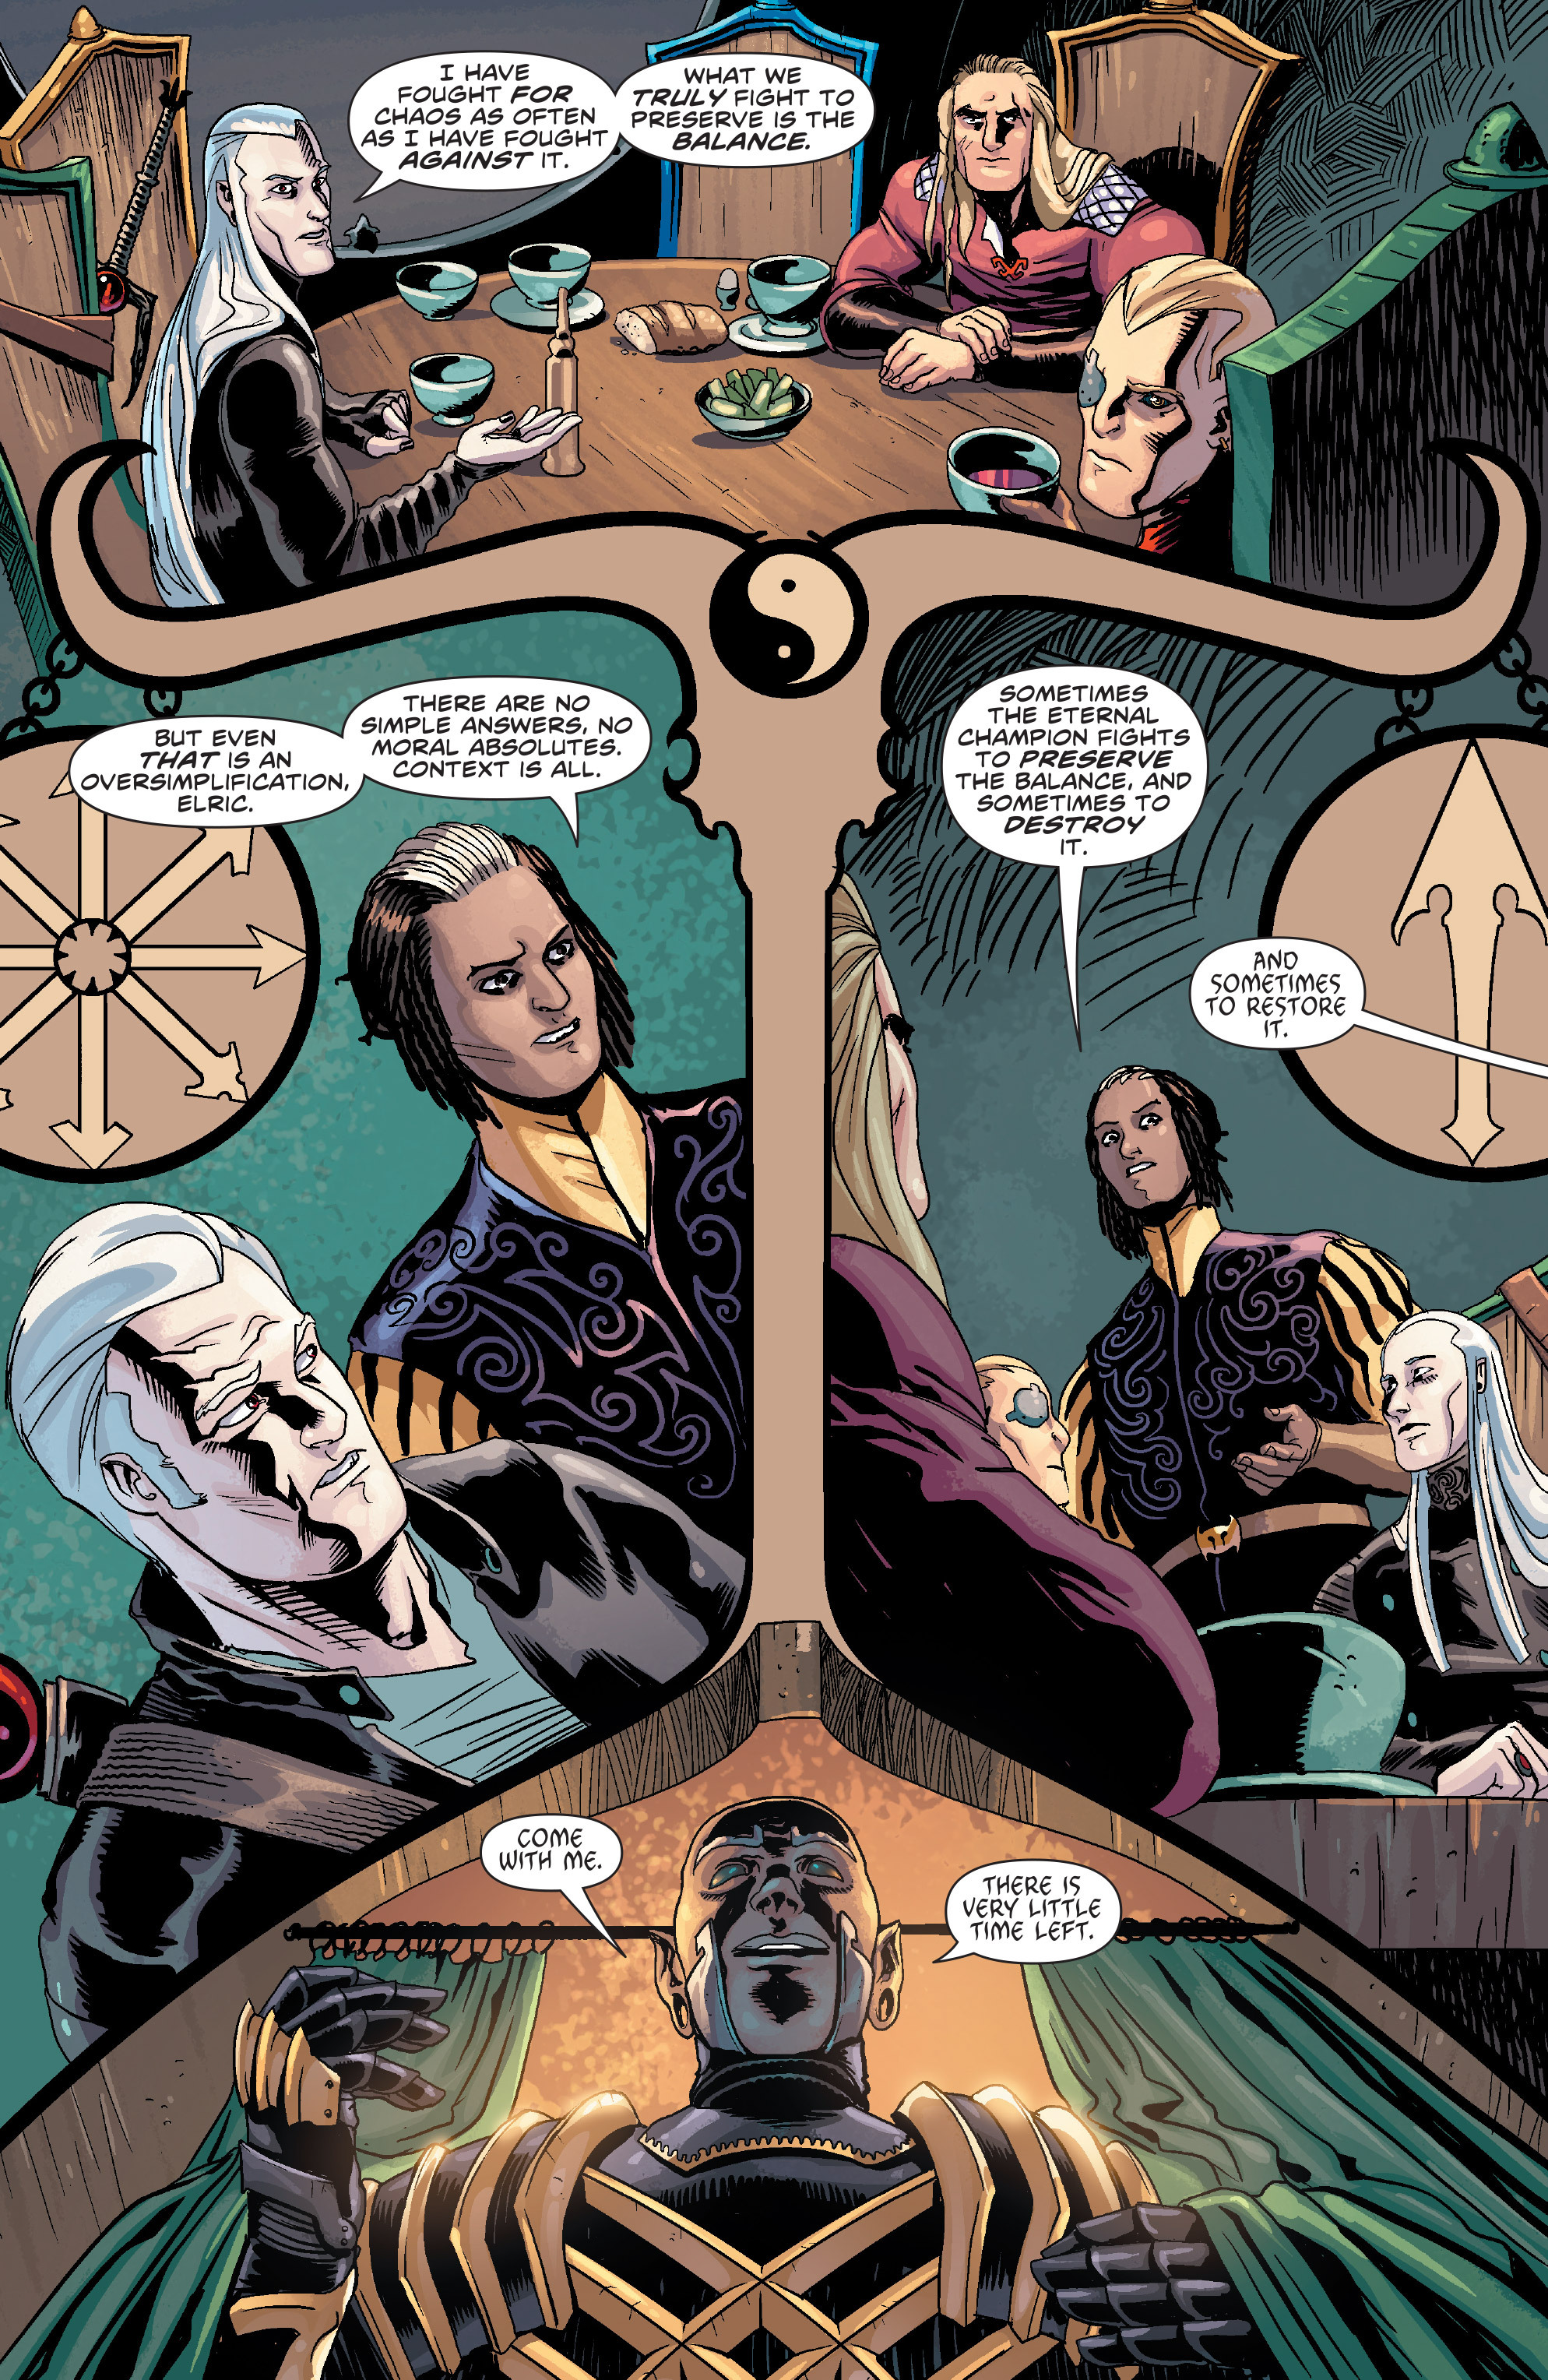 Read online Elric: The Balance Lost comic -  Issue # TPB 2 - 78